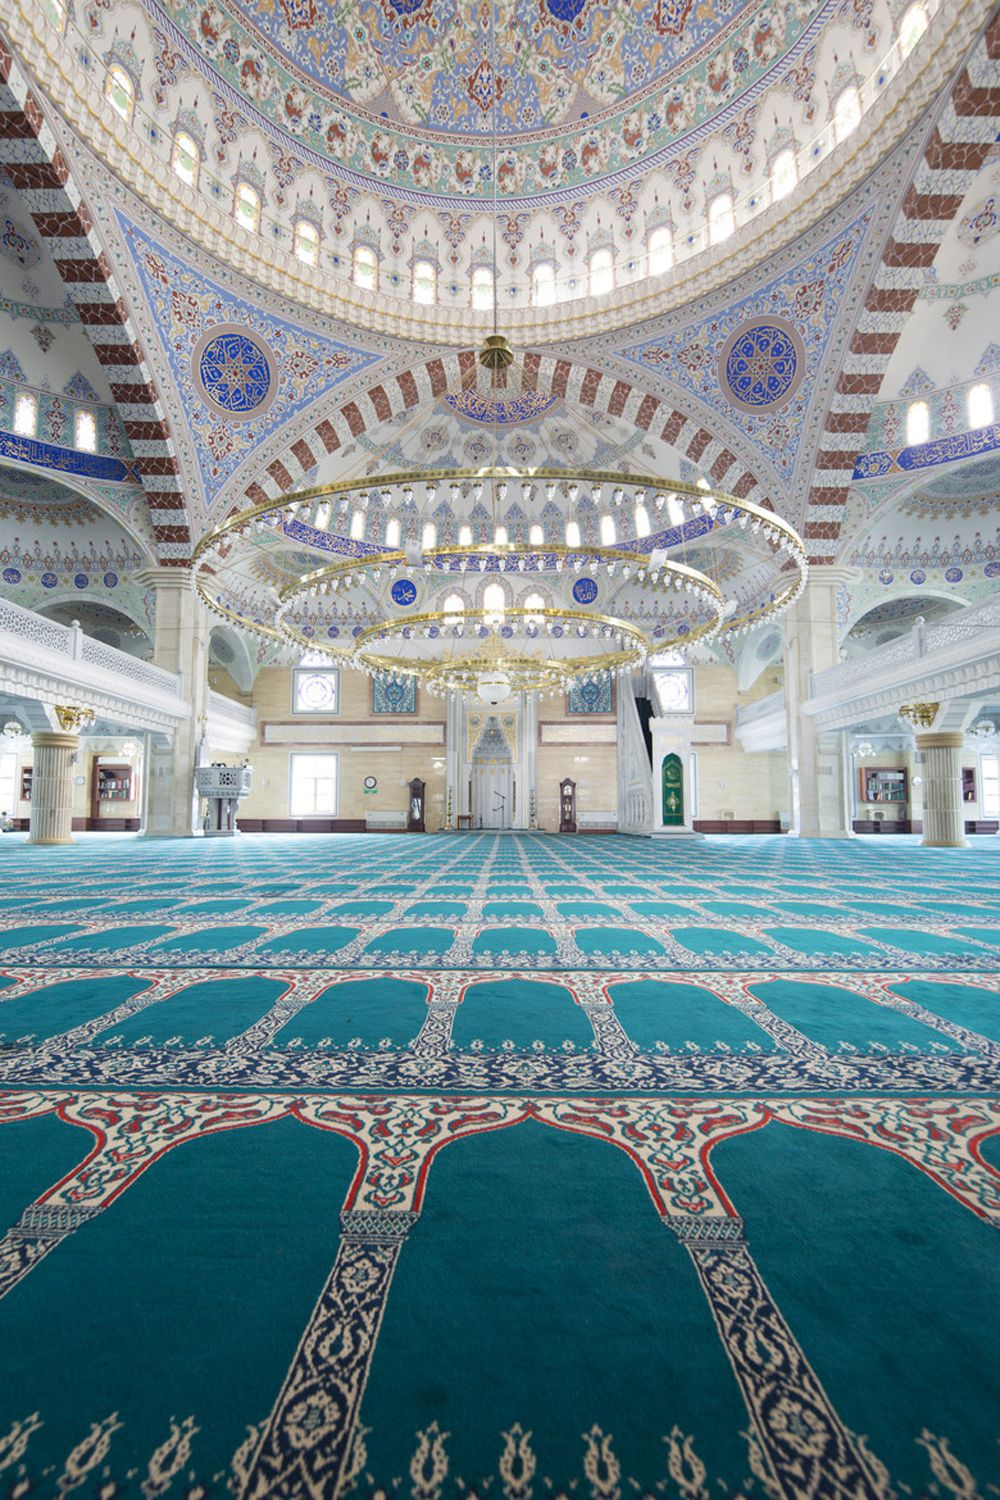 Beautiful interior architecture of a mosque beautiful for Beautiful architecture